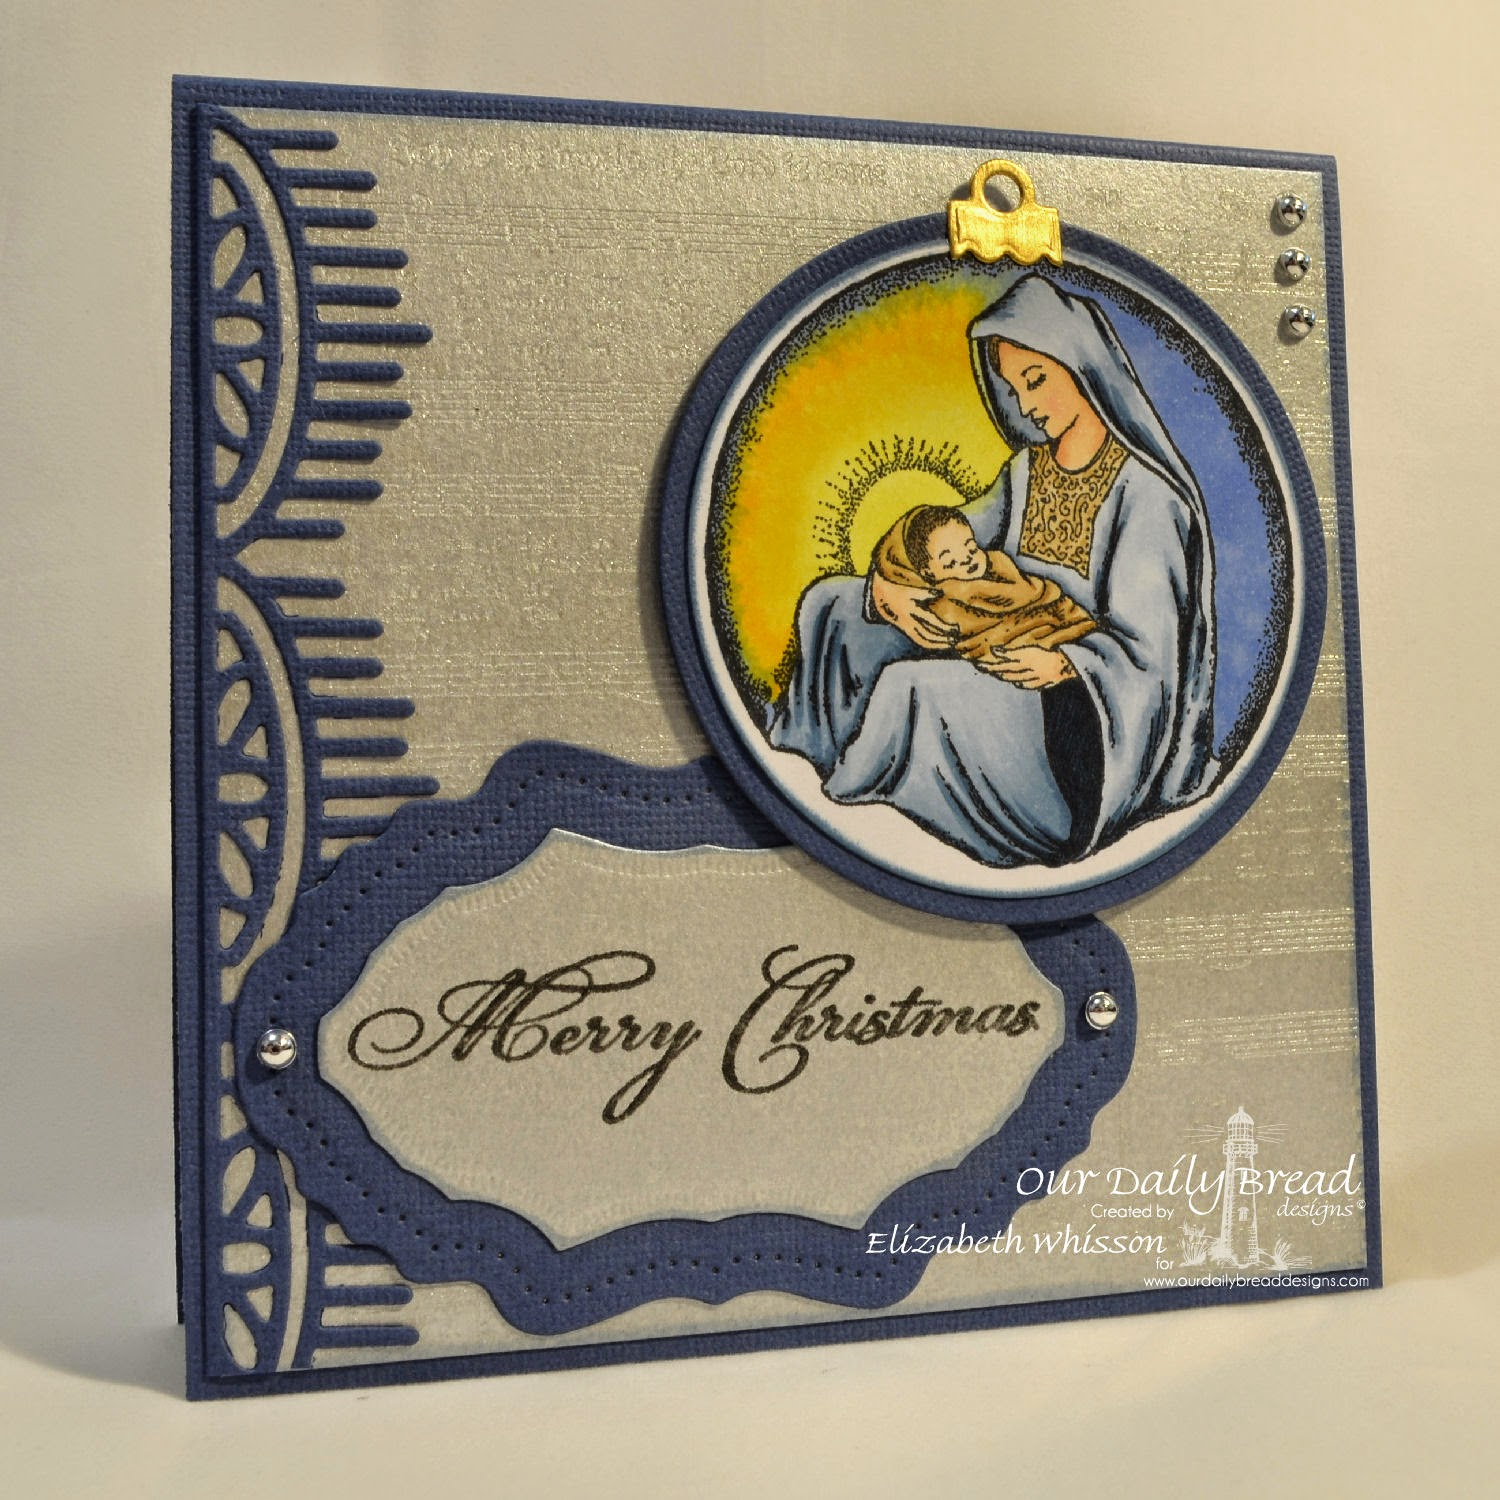 Our Daily Bread Designs, Mother and Child Ornament, Joy to the World Hymn, Christmas Verses, Circle Ornament Dies, Vintage Flourish Pattern Dies, Beautiful Borders Dies, Matting Circles Dies, Designed by Elizabeth Whisson